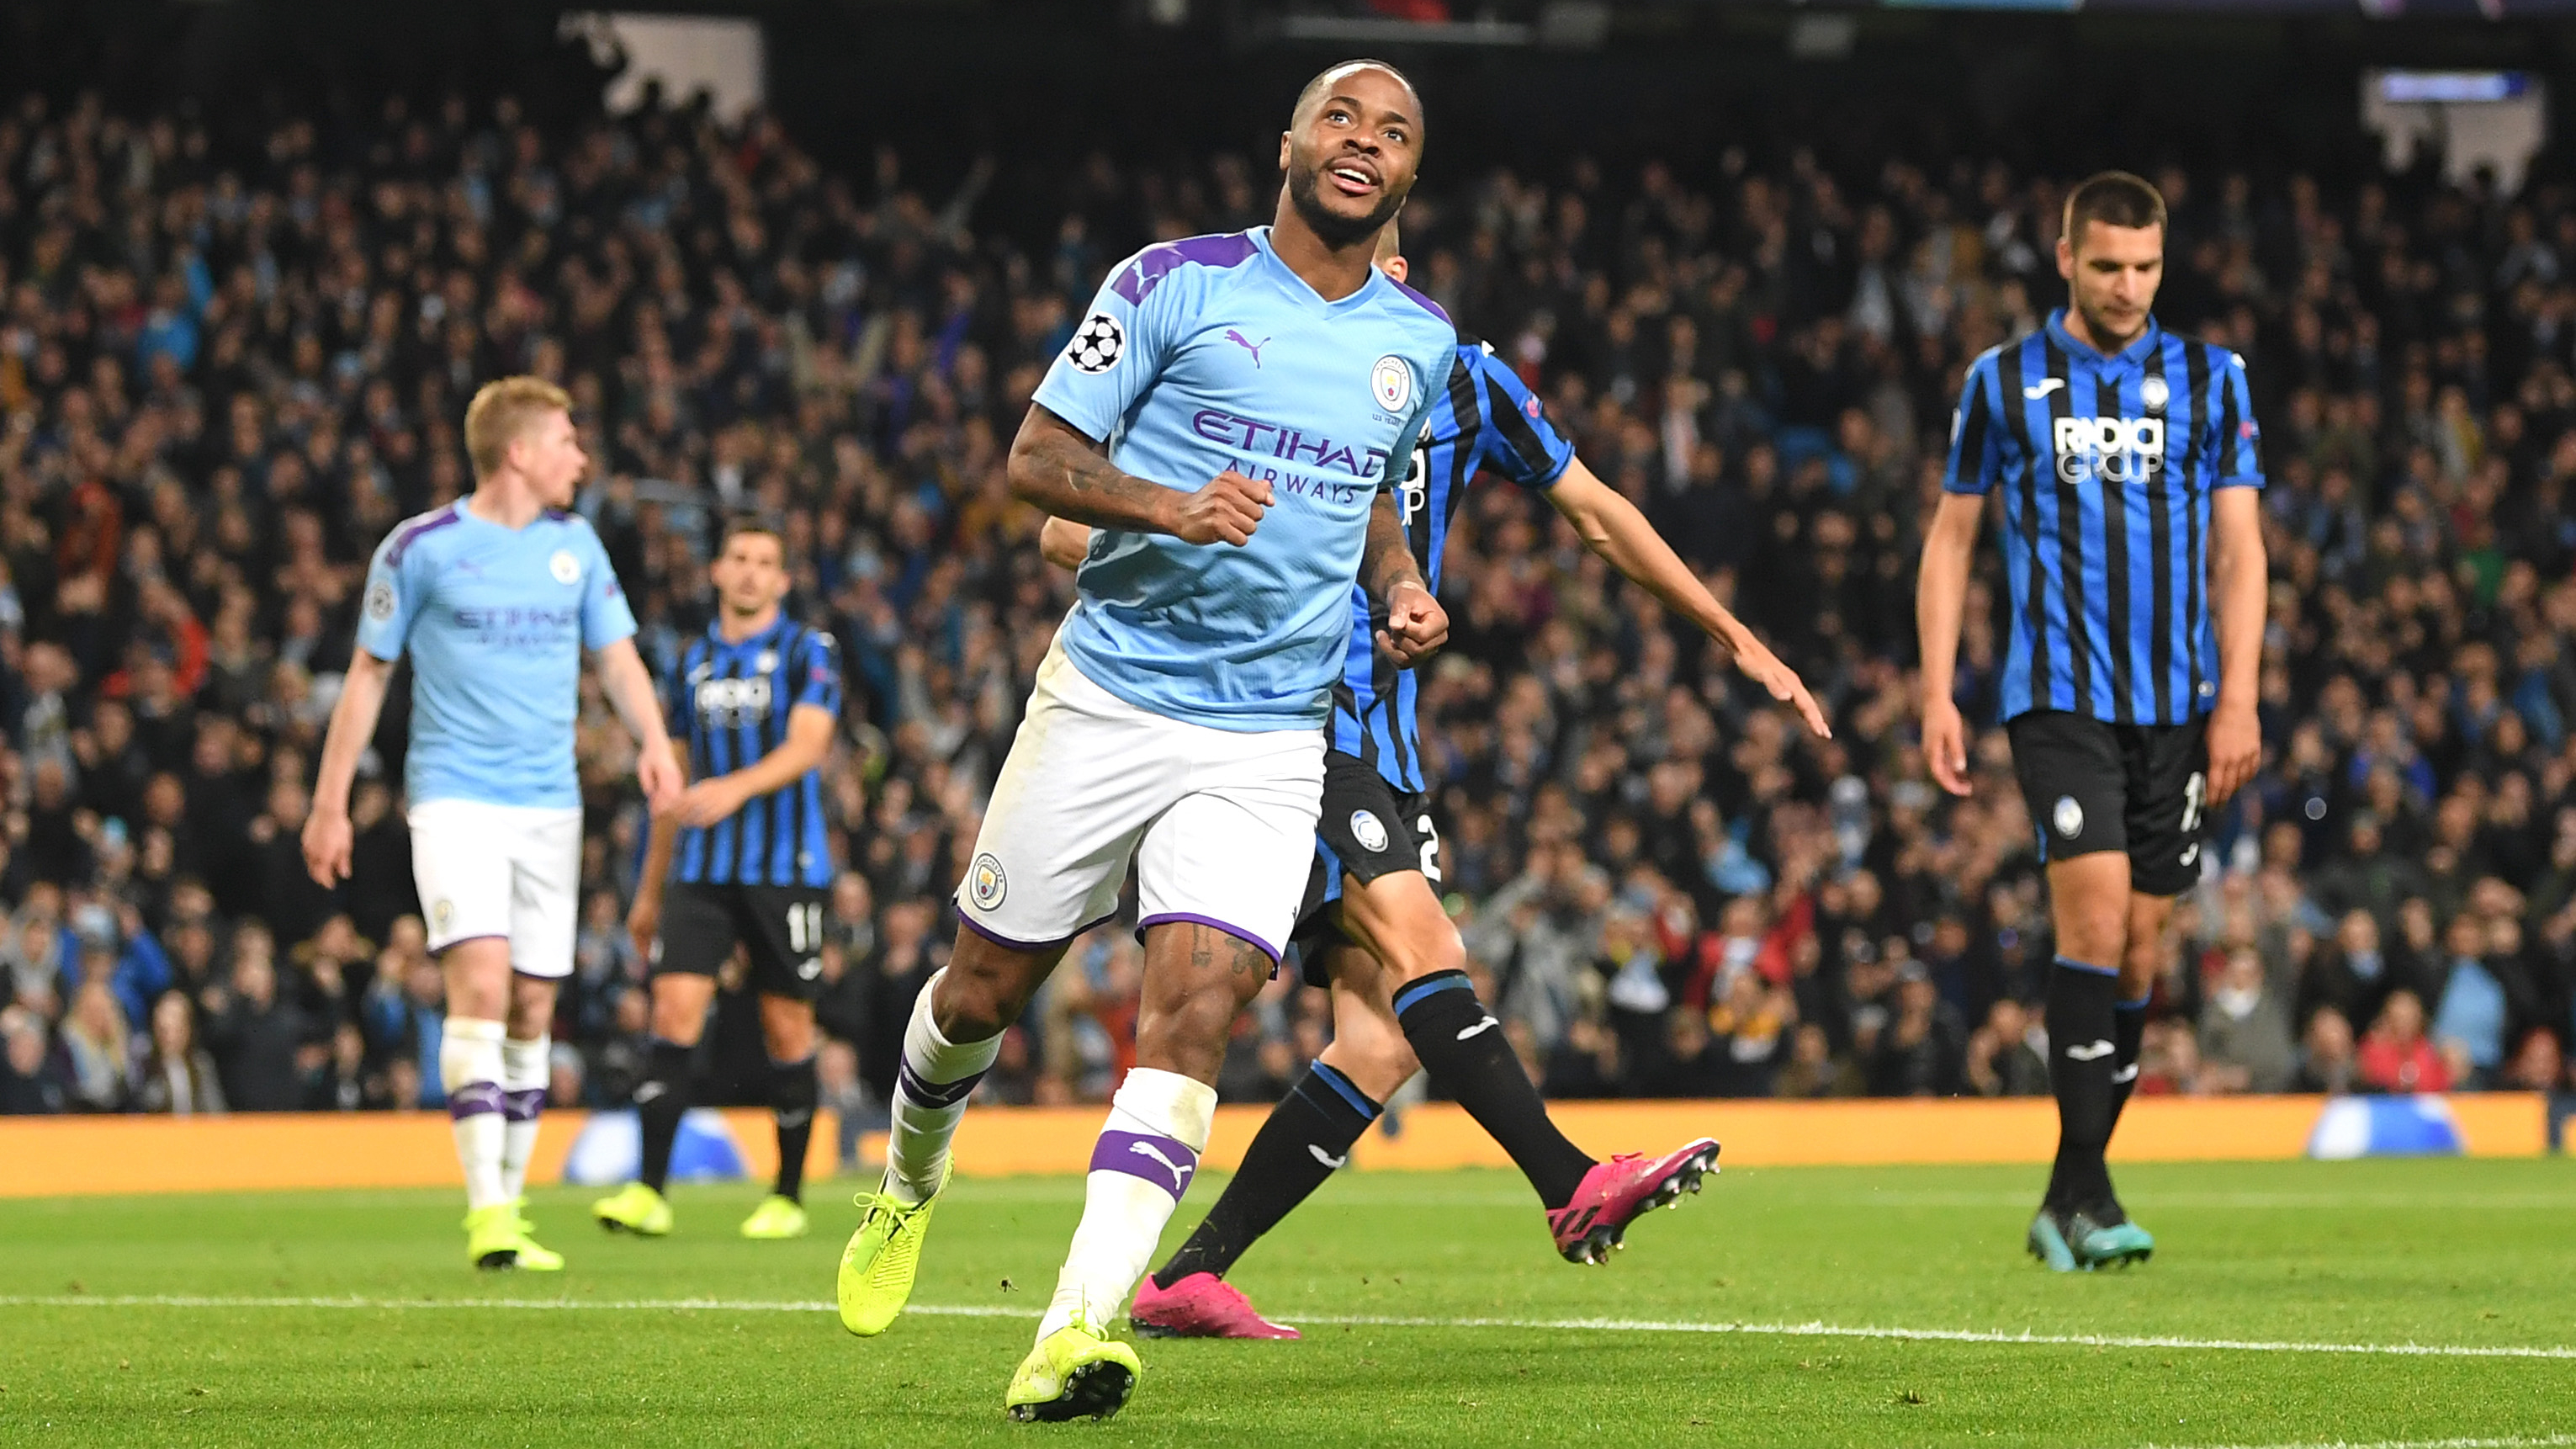 Sterling one of the top five players in the world - Ferdinand